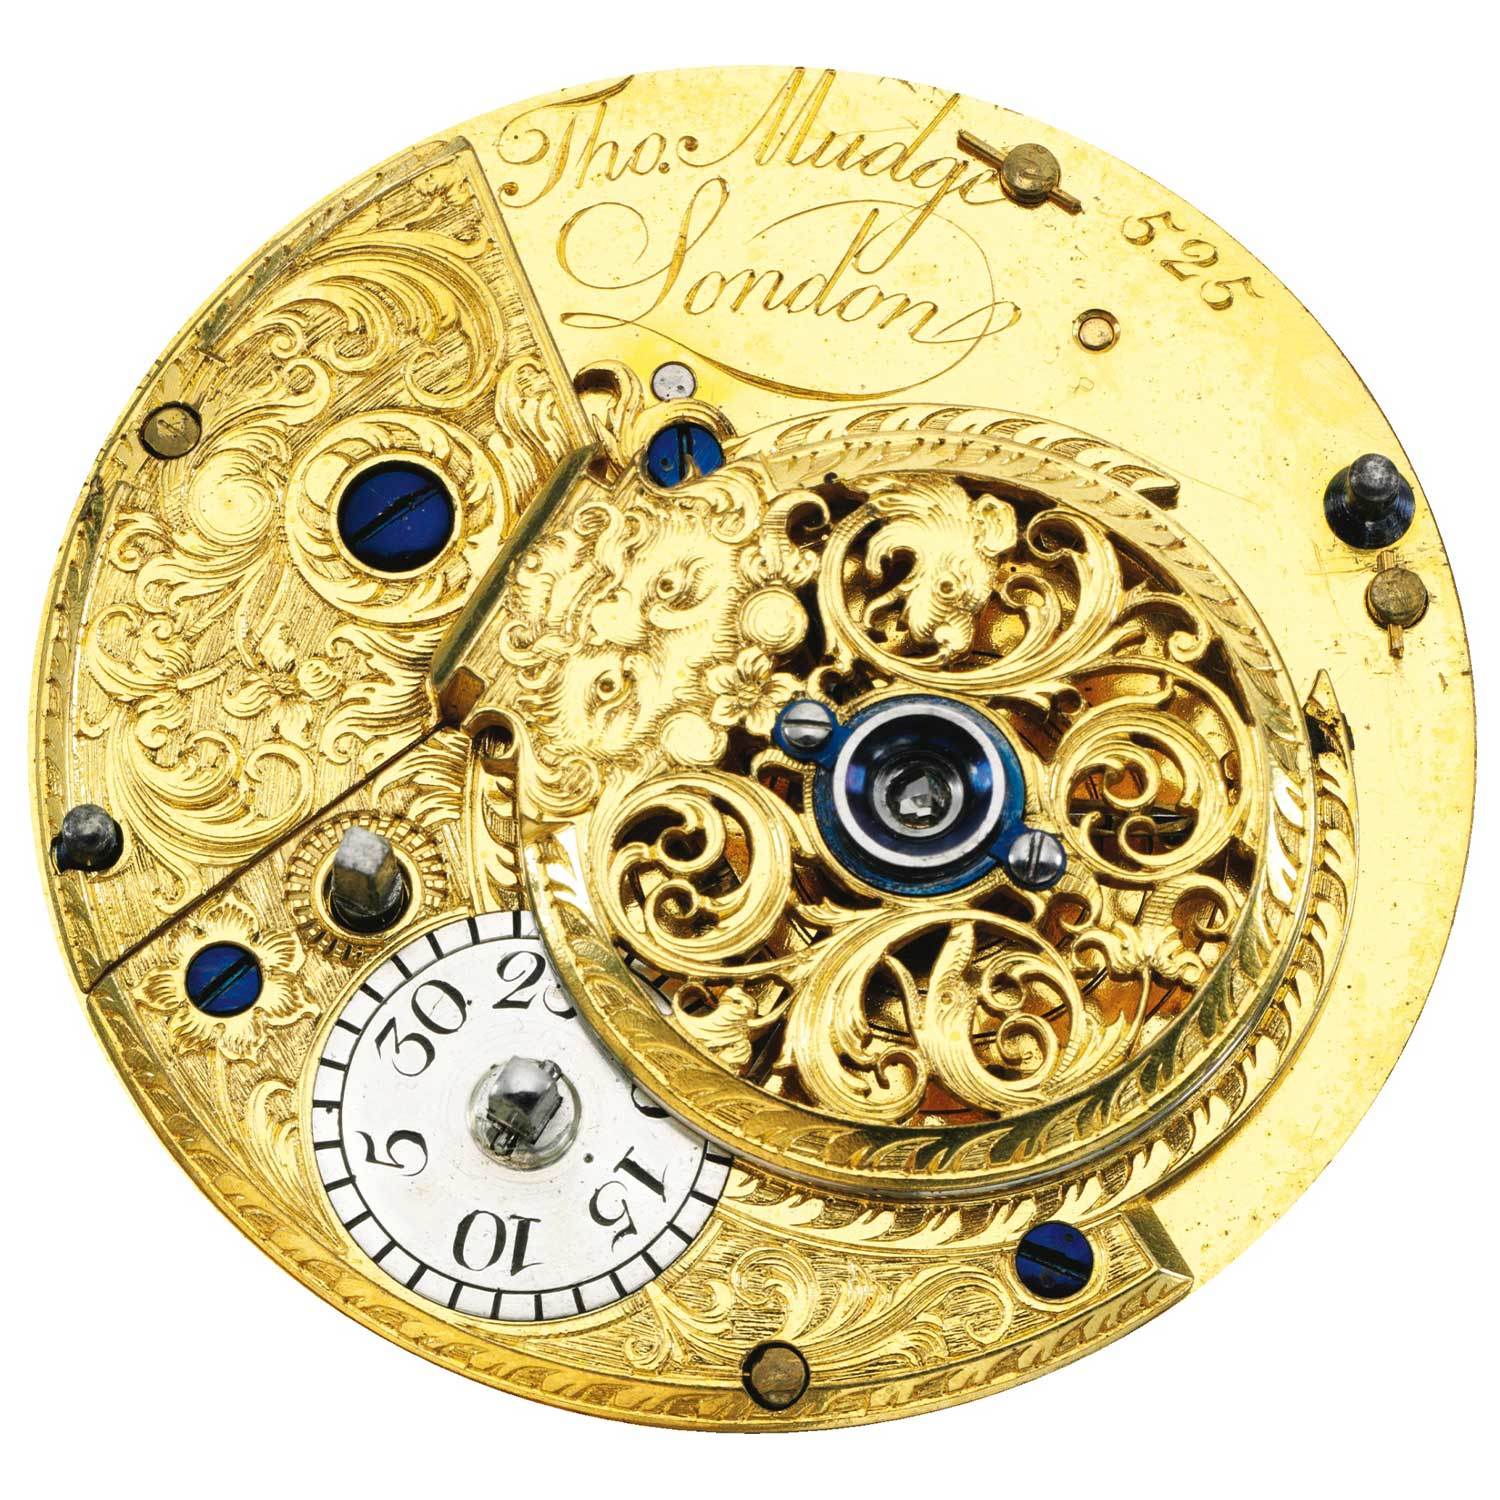 The engraved back of the movement of the Thomas Mudge Perpetual Calendar pocket watch No. 525 (Image: sothebys.com)